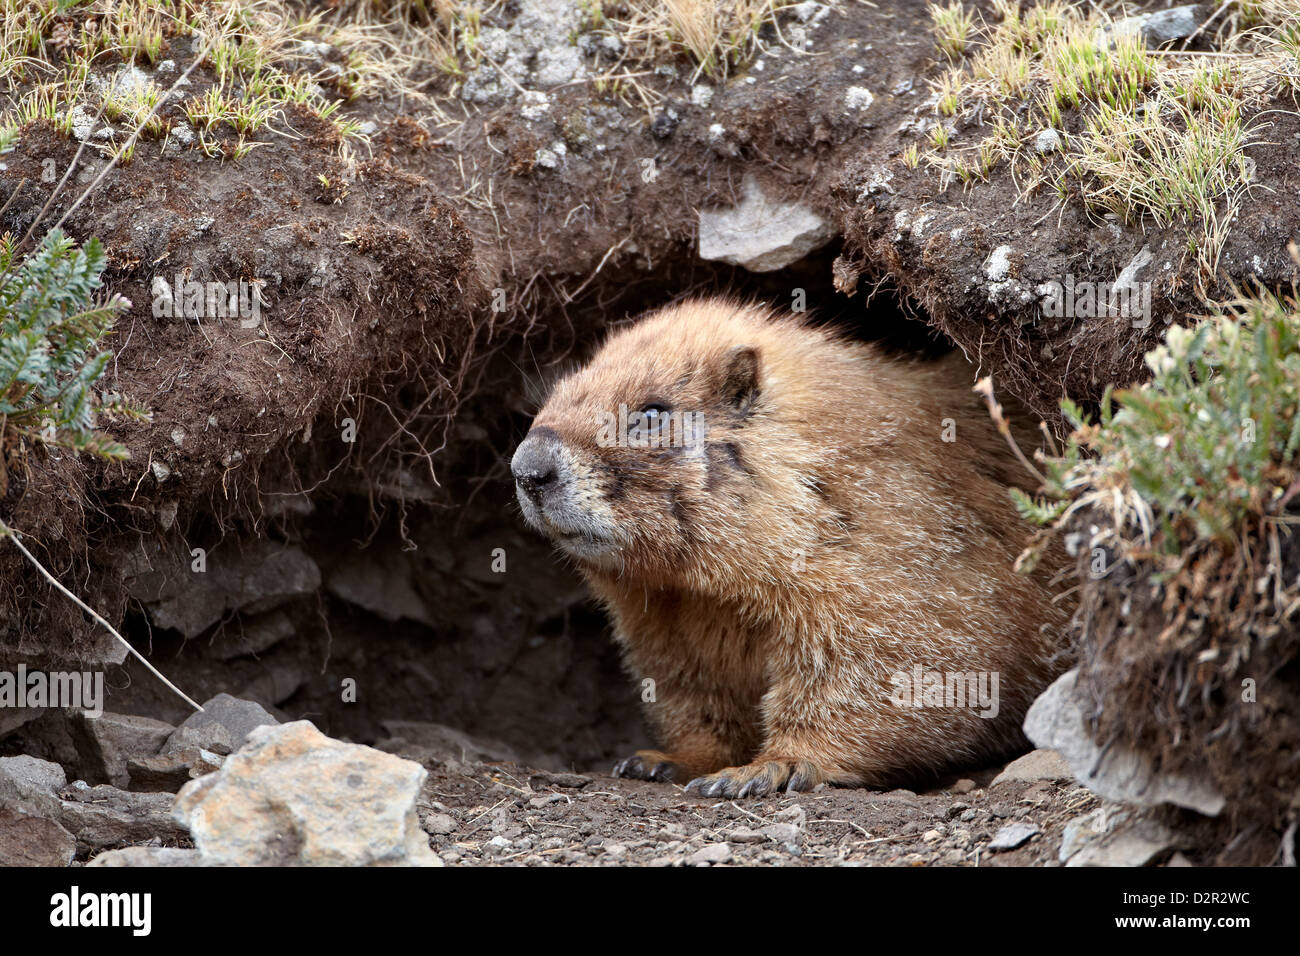 Yellow-bellied marmot (yellowbelly marmot) (Marmota flaviventris) at a burrow entrance, San Juan National Forest, - Stock Image